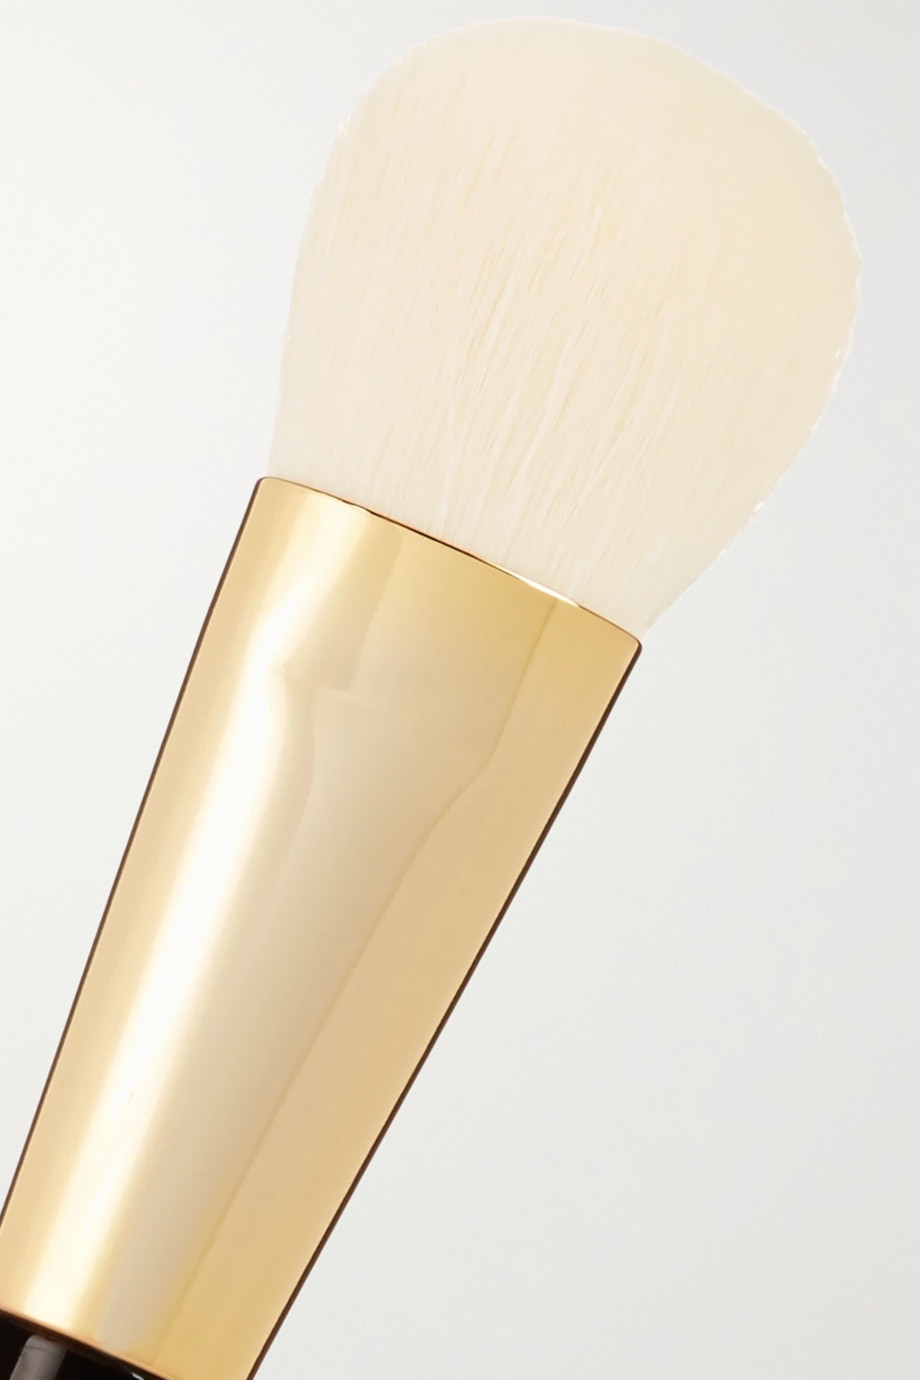 TOM FORD BEAUTY Cream Foundation Brush 02